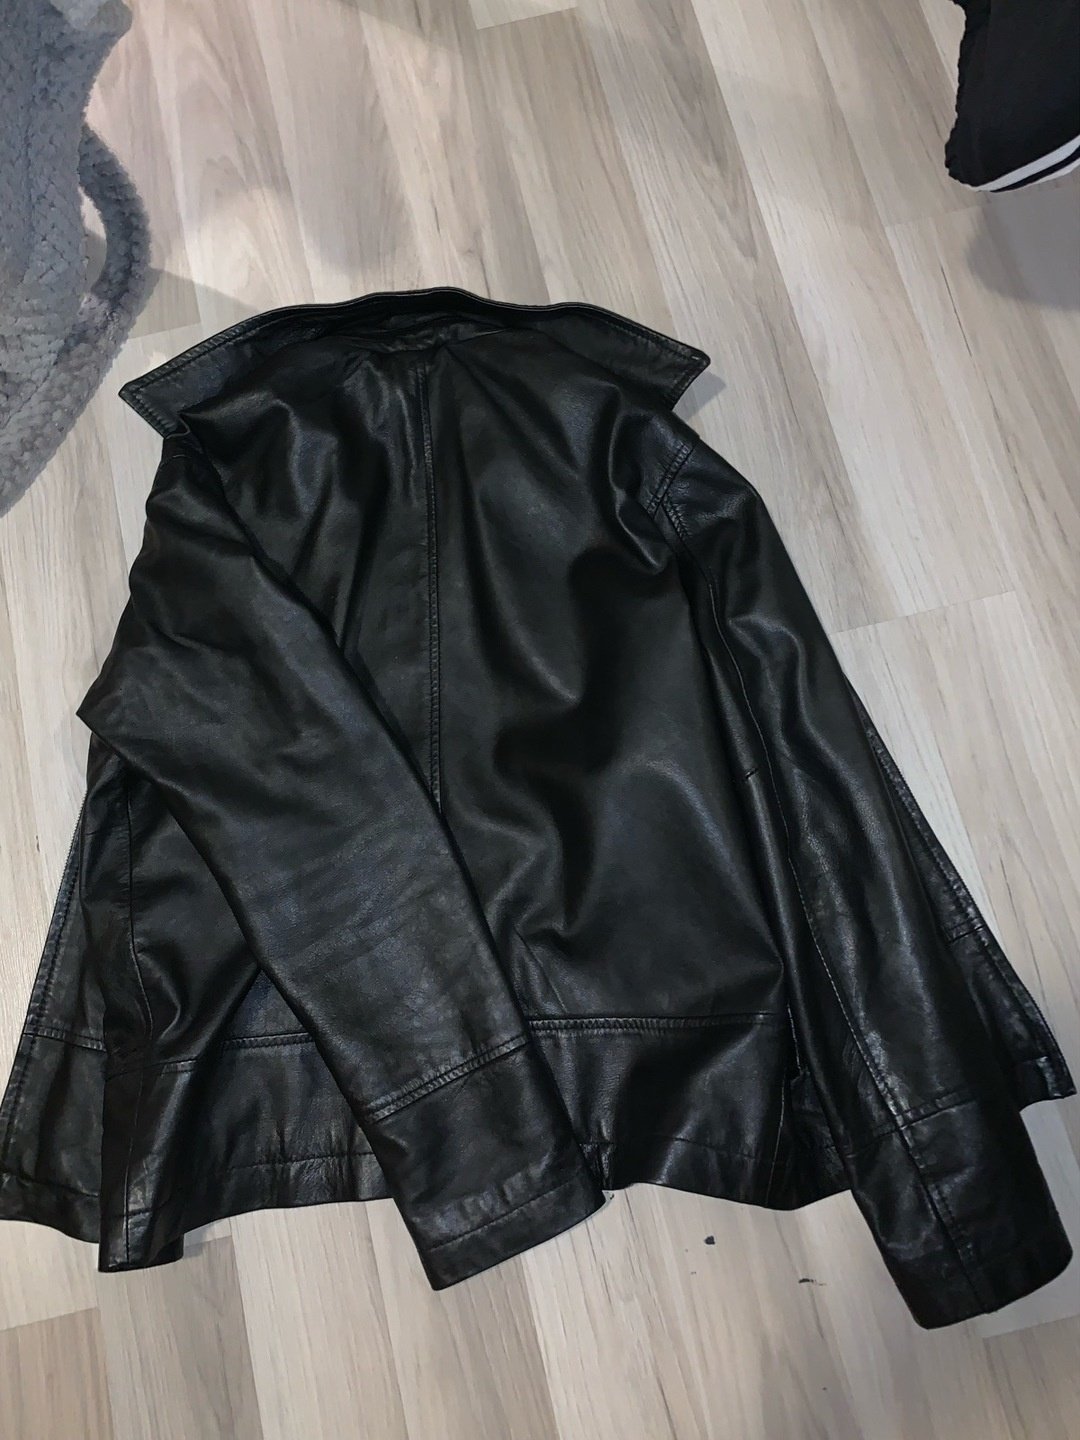 Women's coats & jackets - 4YOU COLLECTION photo 2